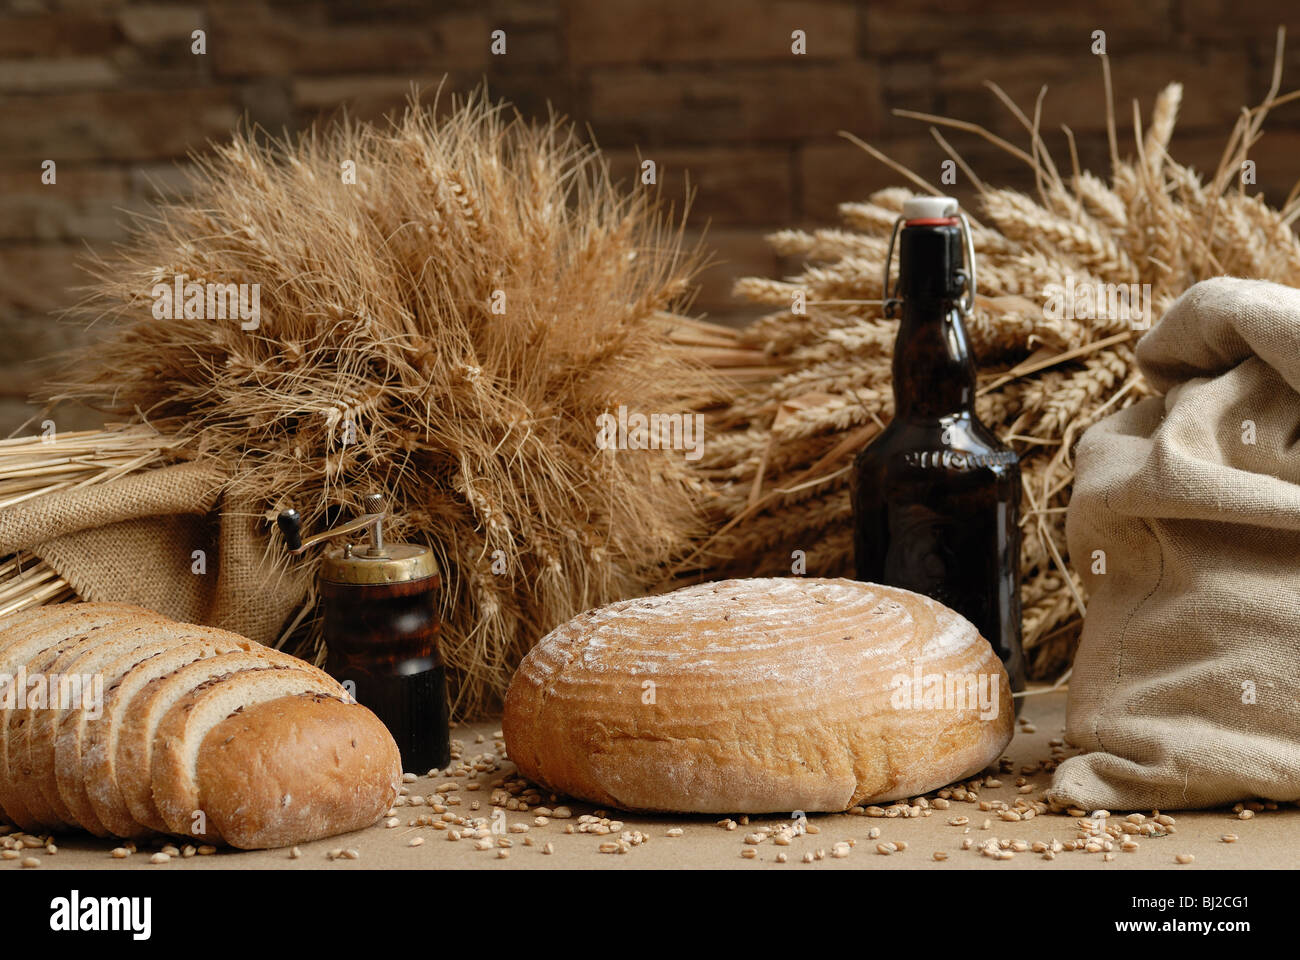 Bag and bread - Stock Image